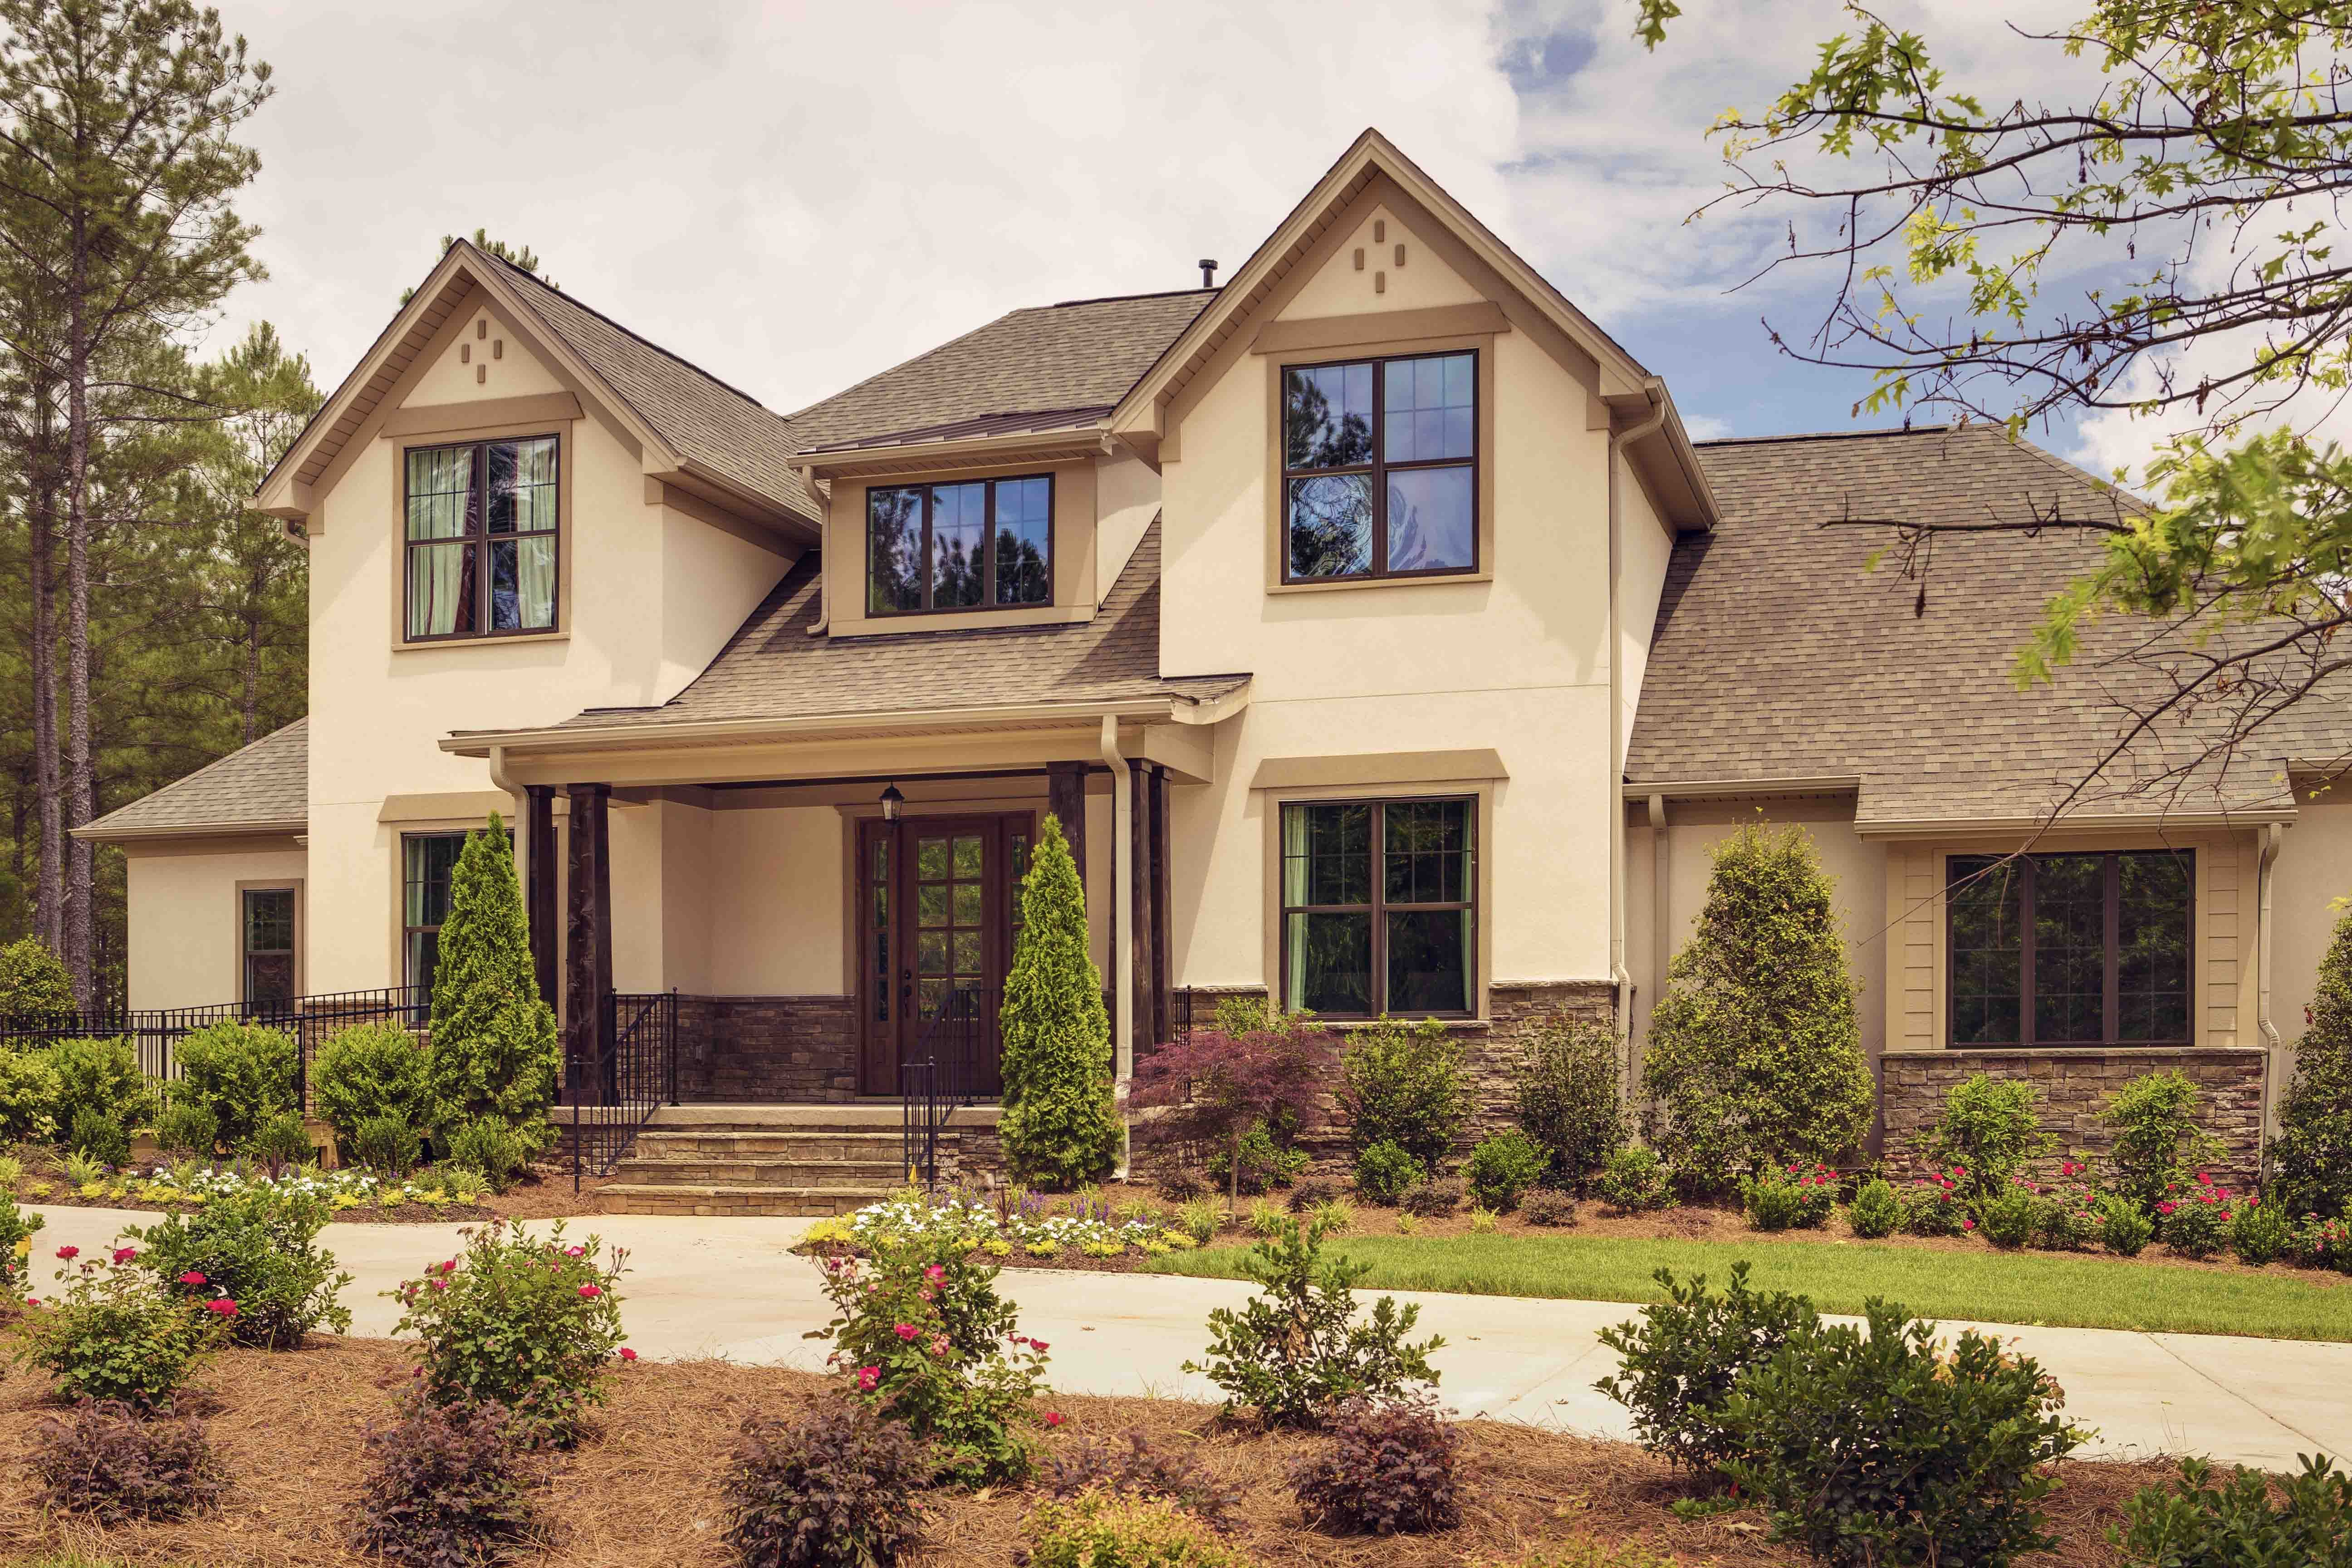 New Lakefront and Oceanfront Homes for Sale Charlotte NC